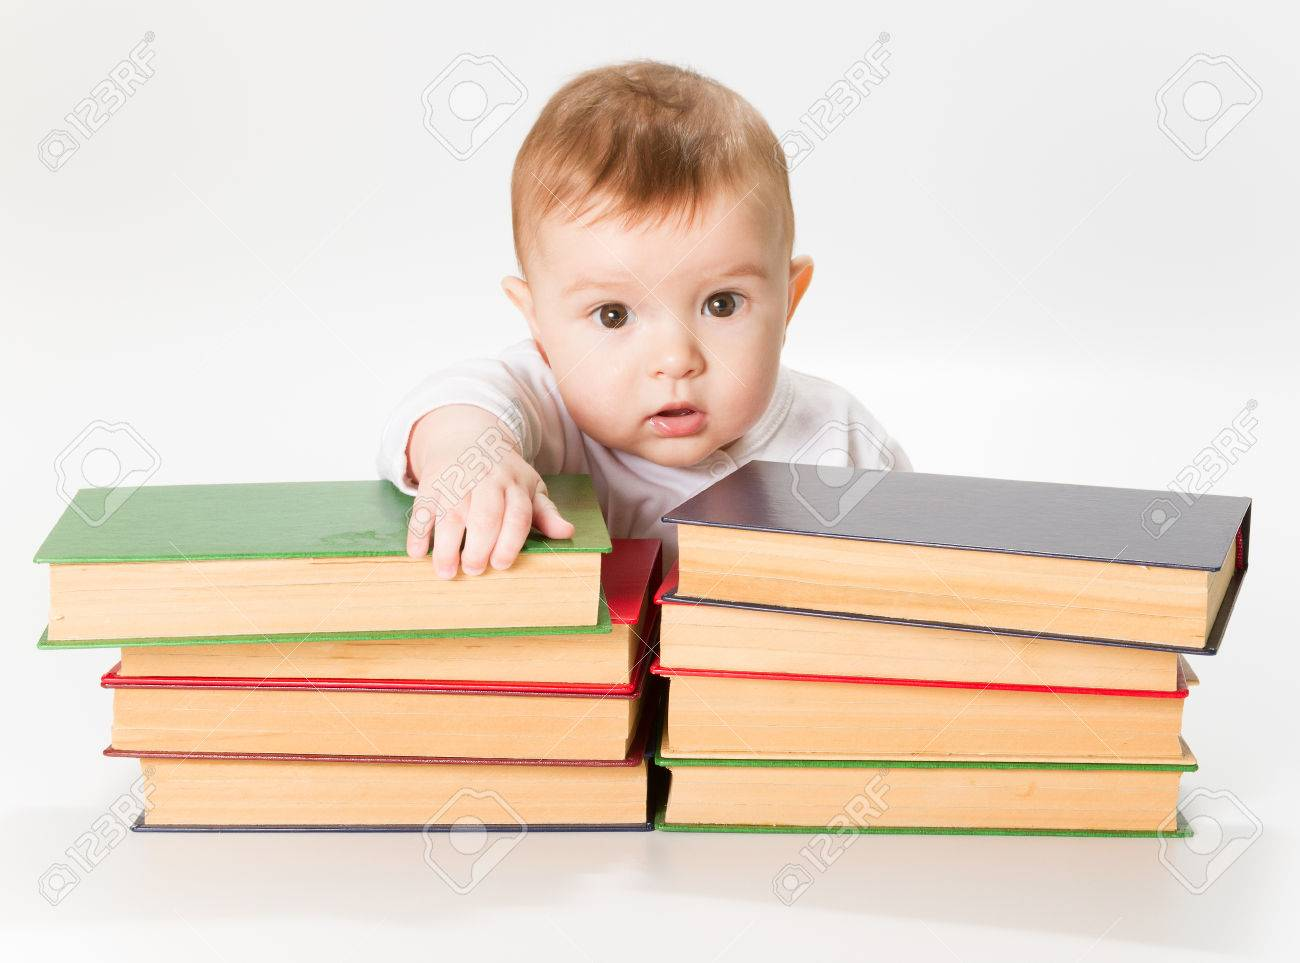 Baby and books kids early childhood education development smart child preschool reading concept